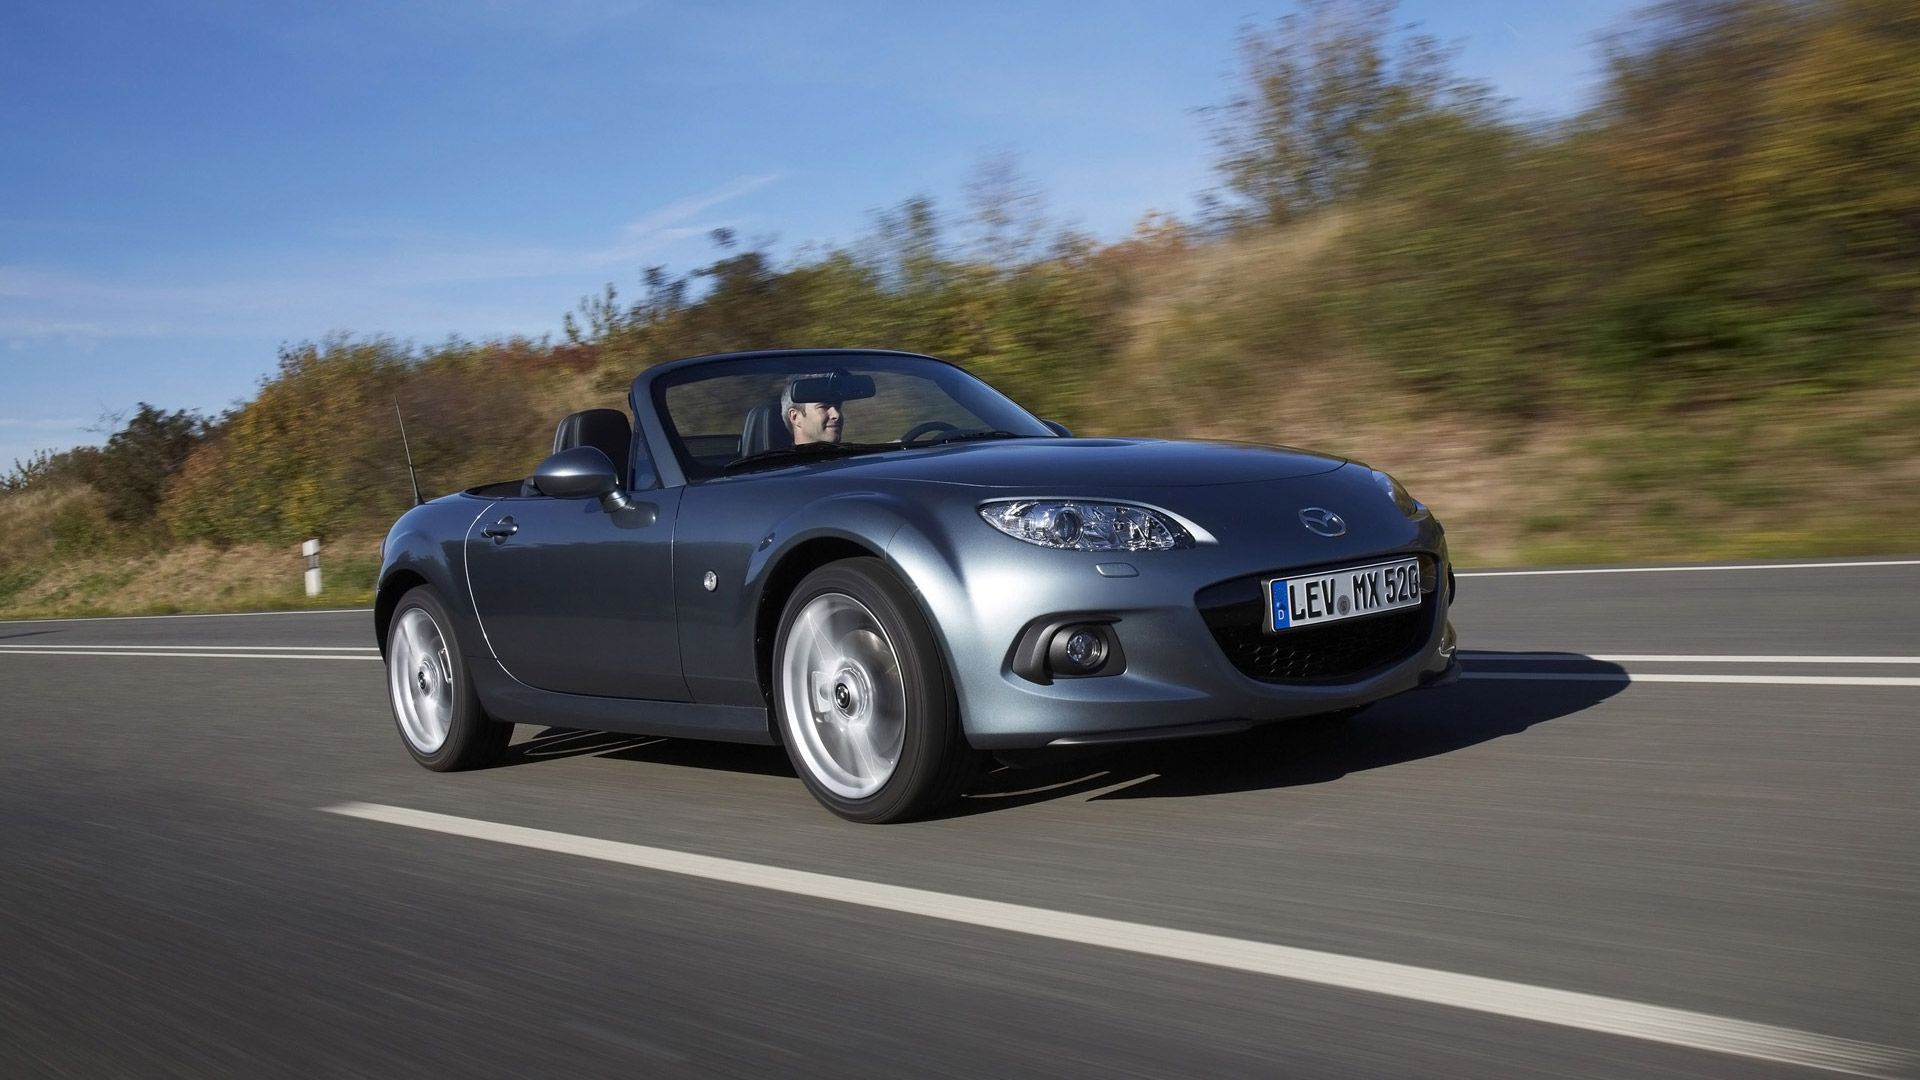 A Mazda Miata. Oh, if only my dad would buy me one! | Randomness ...